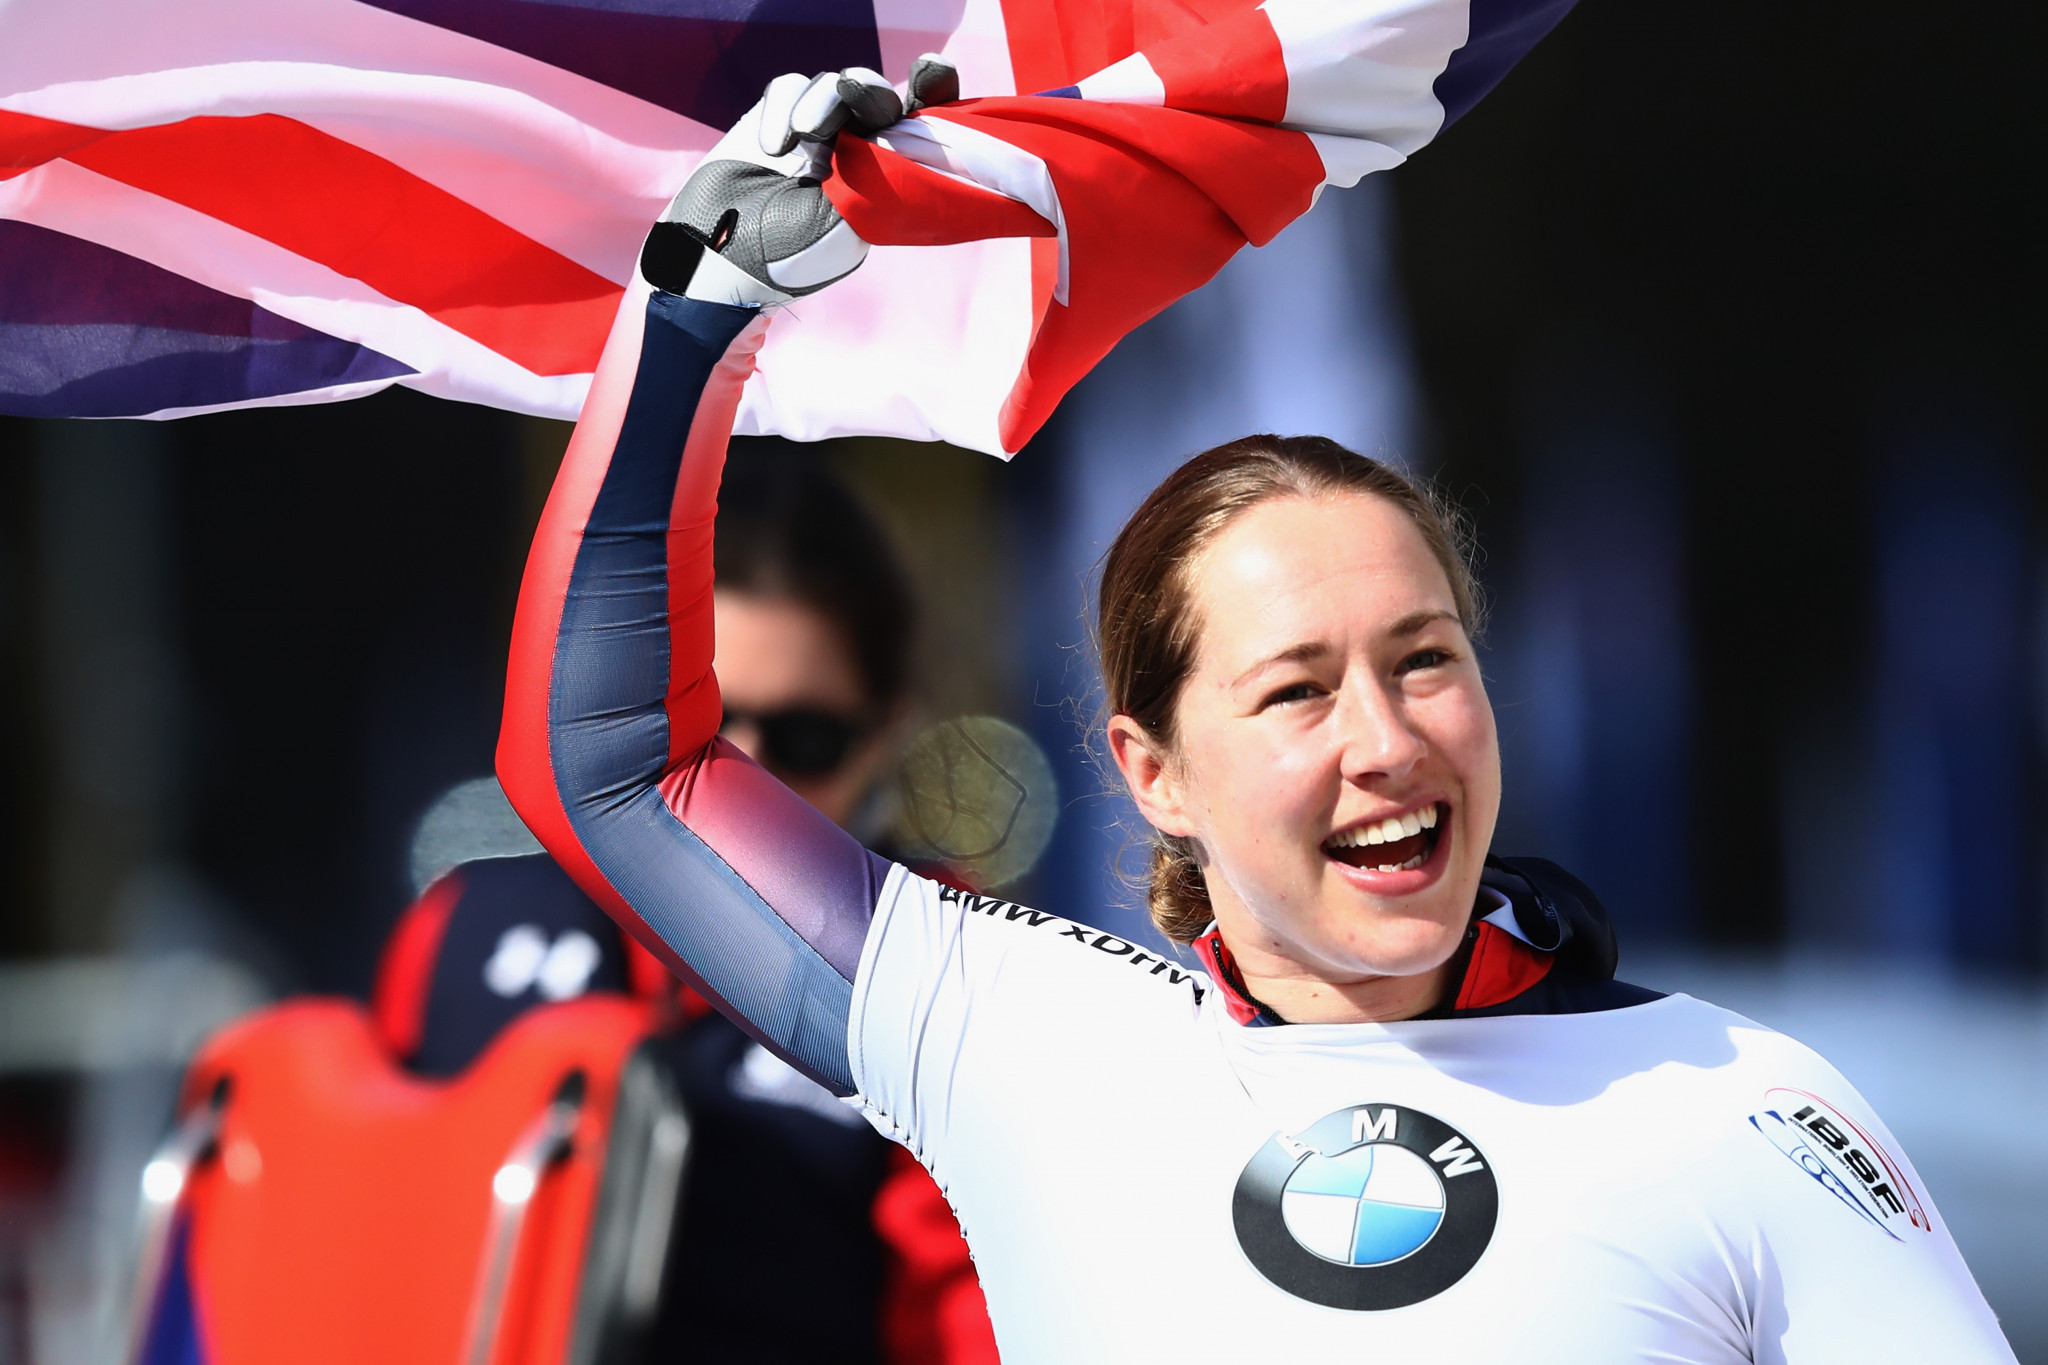 Britain's Olympic skeleton champion Lizzy Yarnold is among athletes to sign up to the #MyMoment campaign ©Getty Images